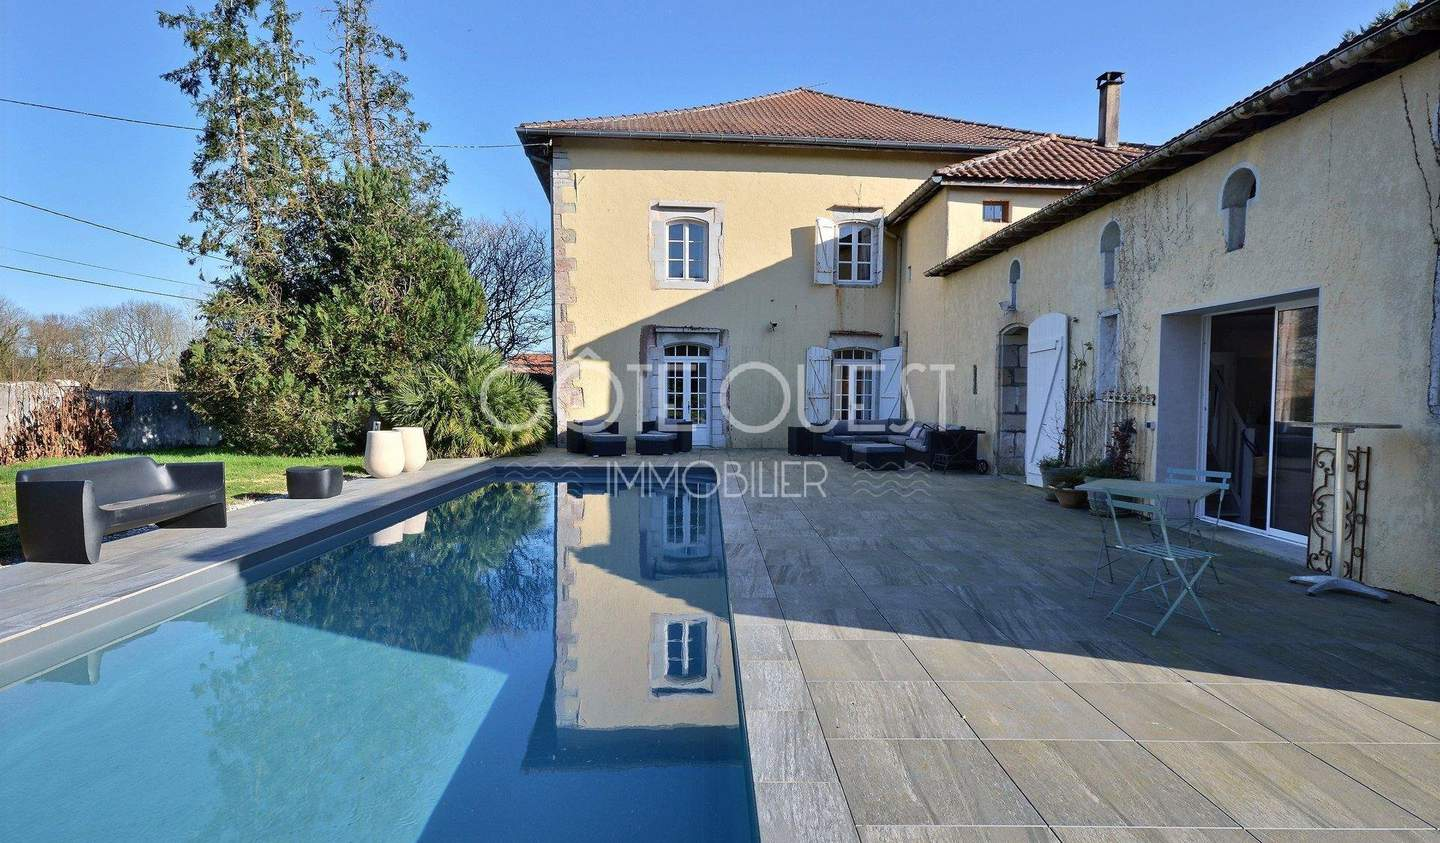 House with pool Saubrigues